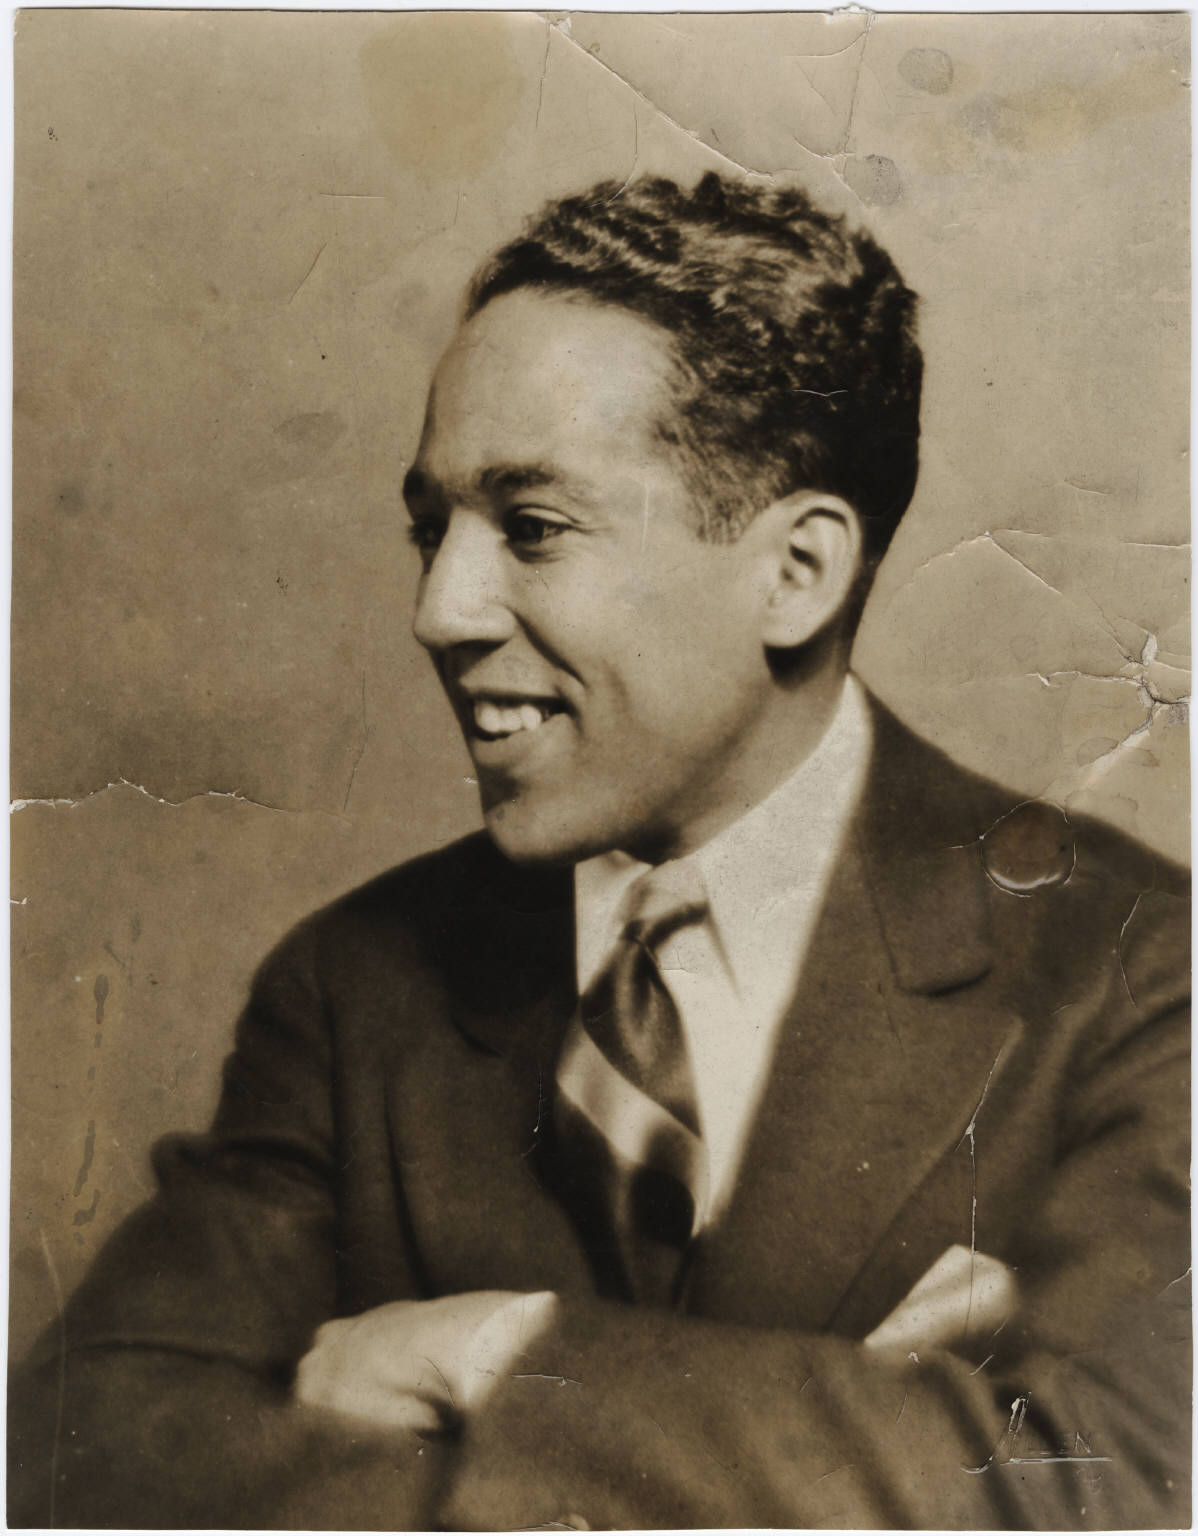 james langston hughes and the influence of the harlem renaissance Langston hughes was greatly influenced by the roaring twenties, the great depression, the harlem renaissance, and racism and prejudice in 1926-1936 when he wrote selected poems  the roaring twenties was a time of prosperity for america where people used their wealth to get away from traditional ideas and inhibitions.